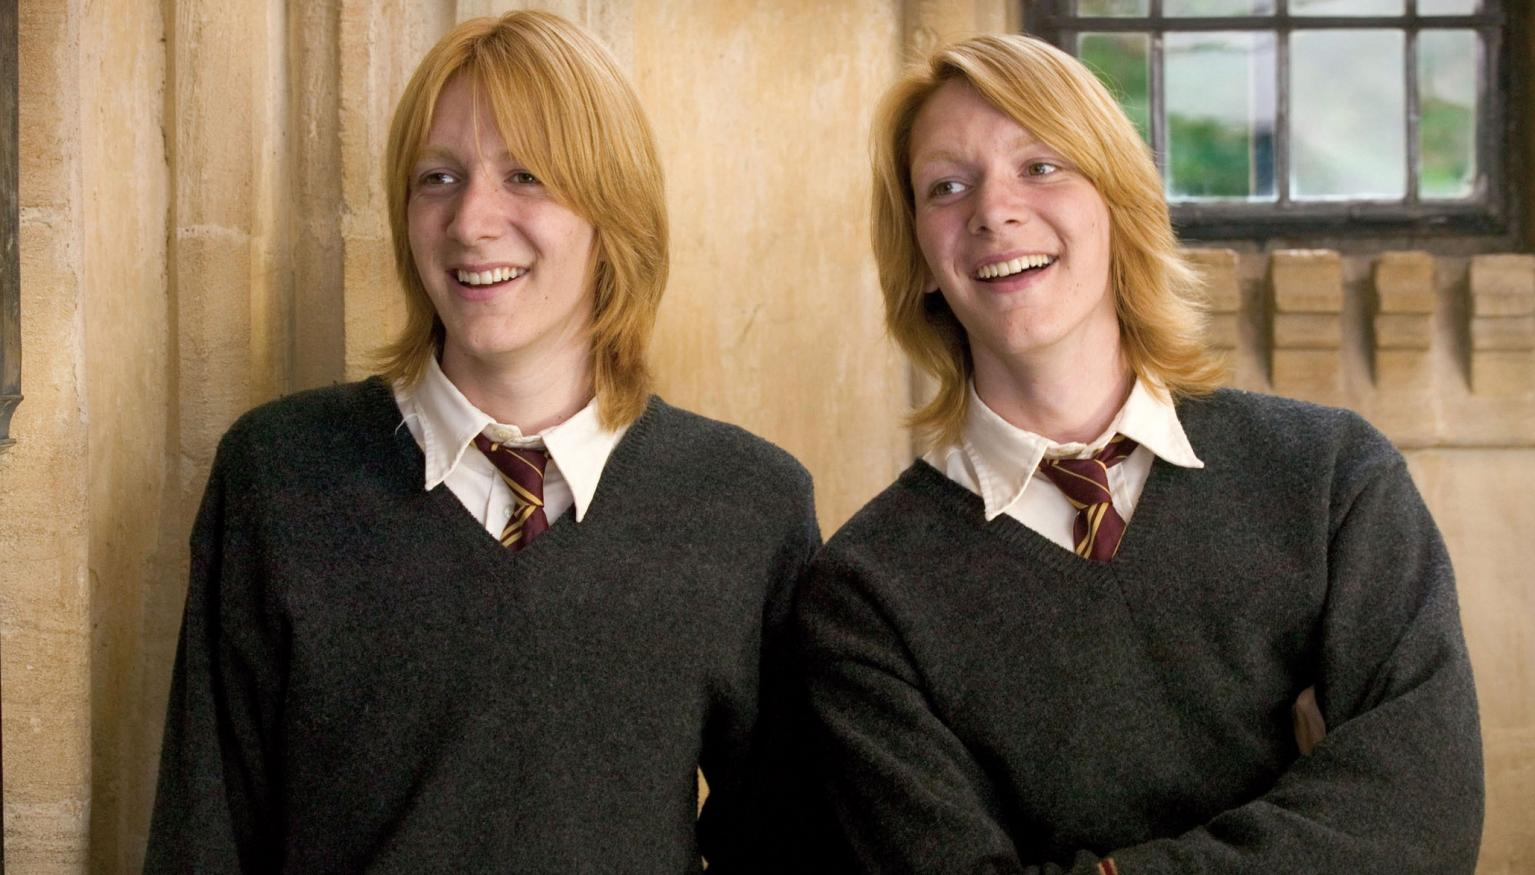 Harry Potter S Weasley Twins Look Pretty Different Now